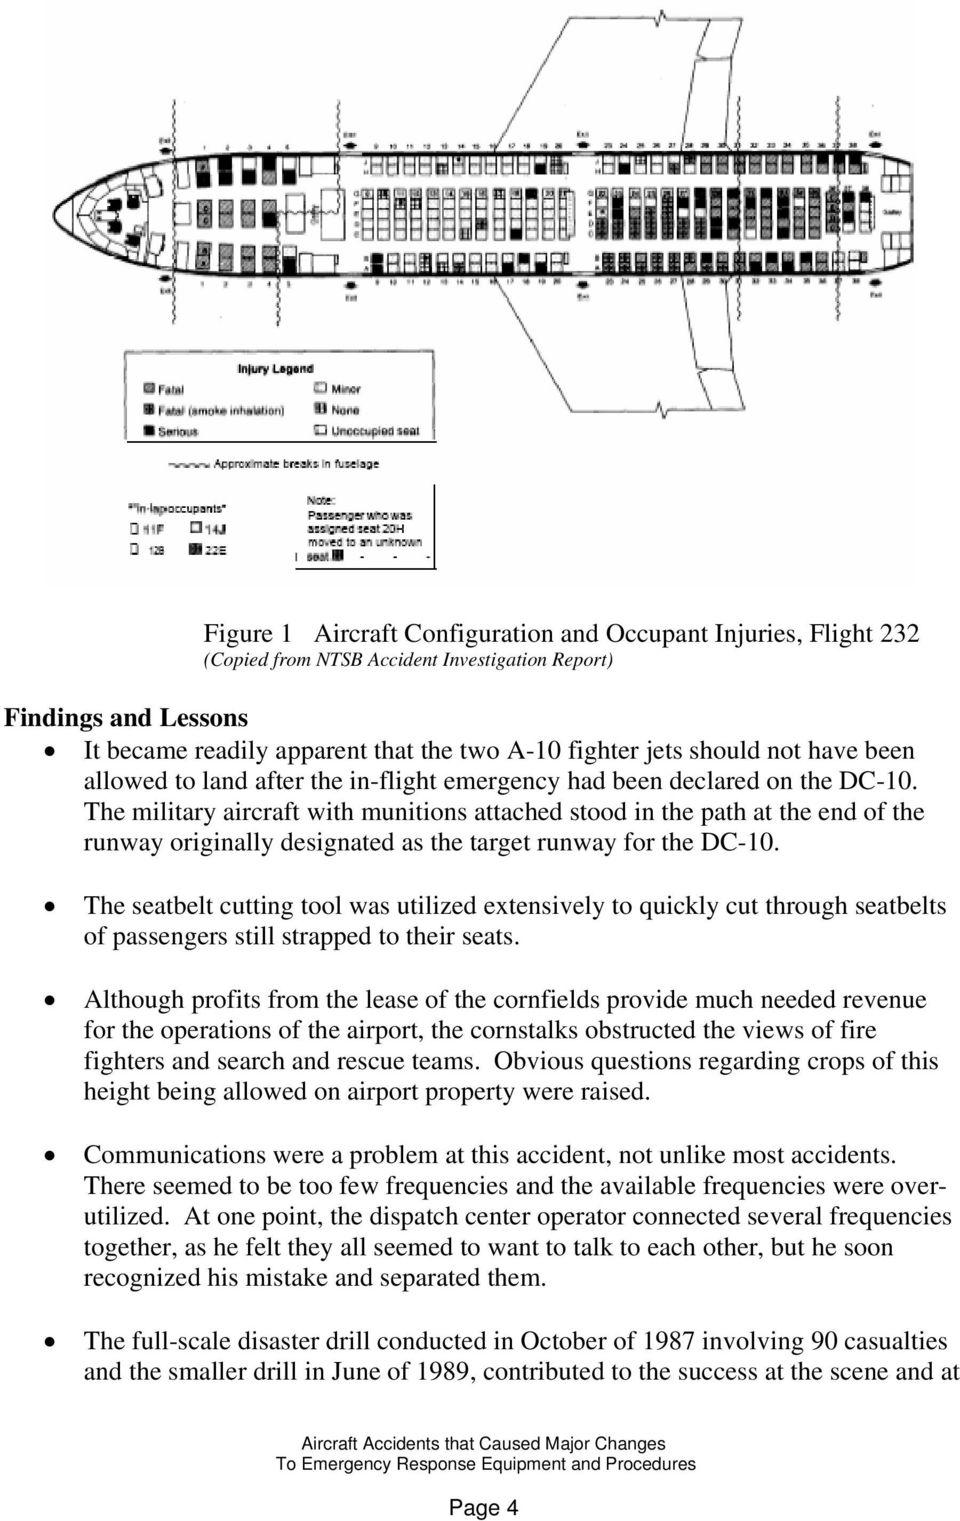 Aircraft Accidents that Caused Major Changes to Emergency Response